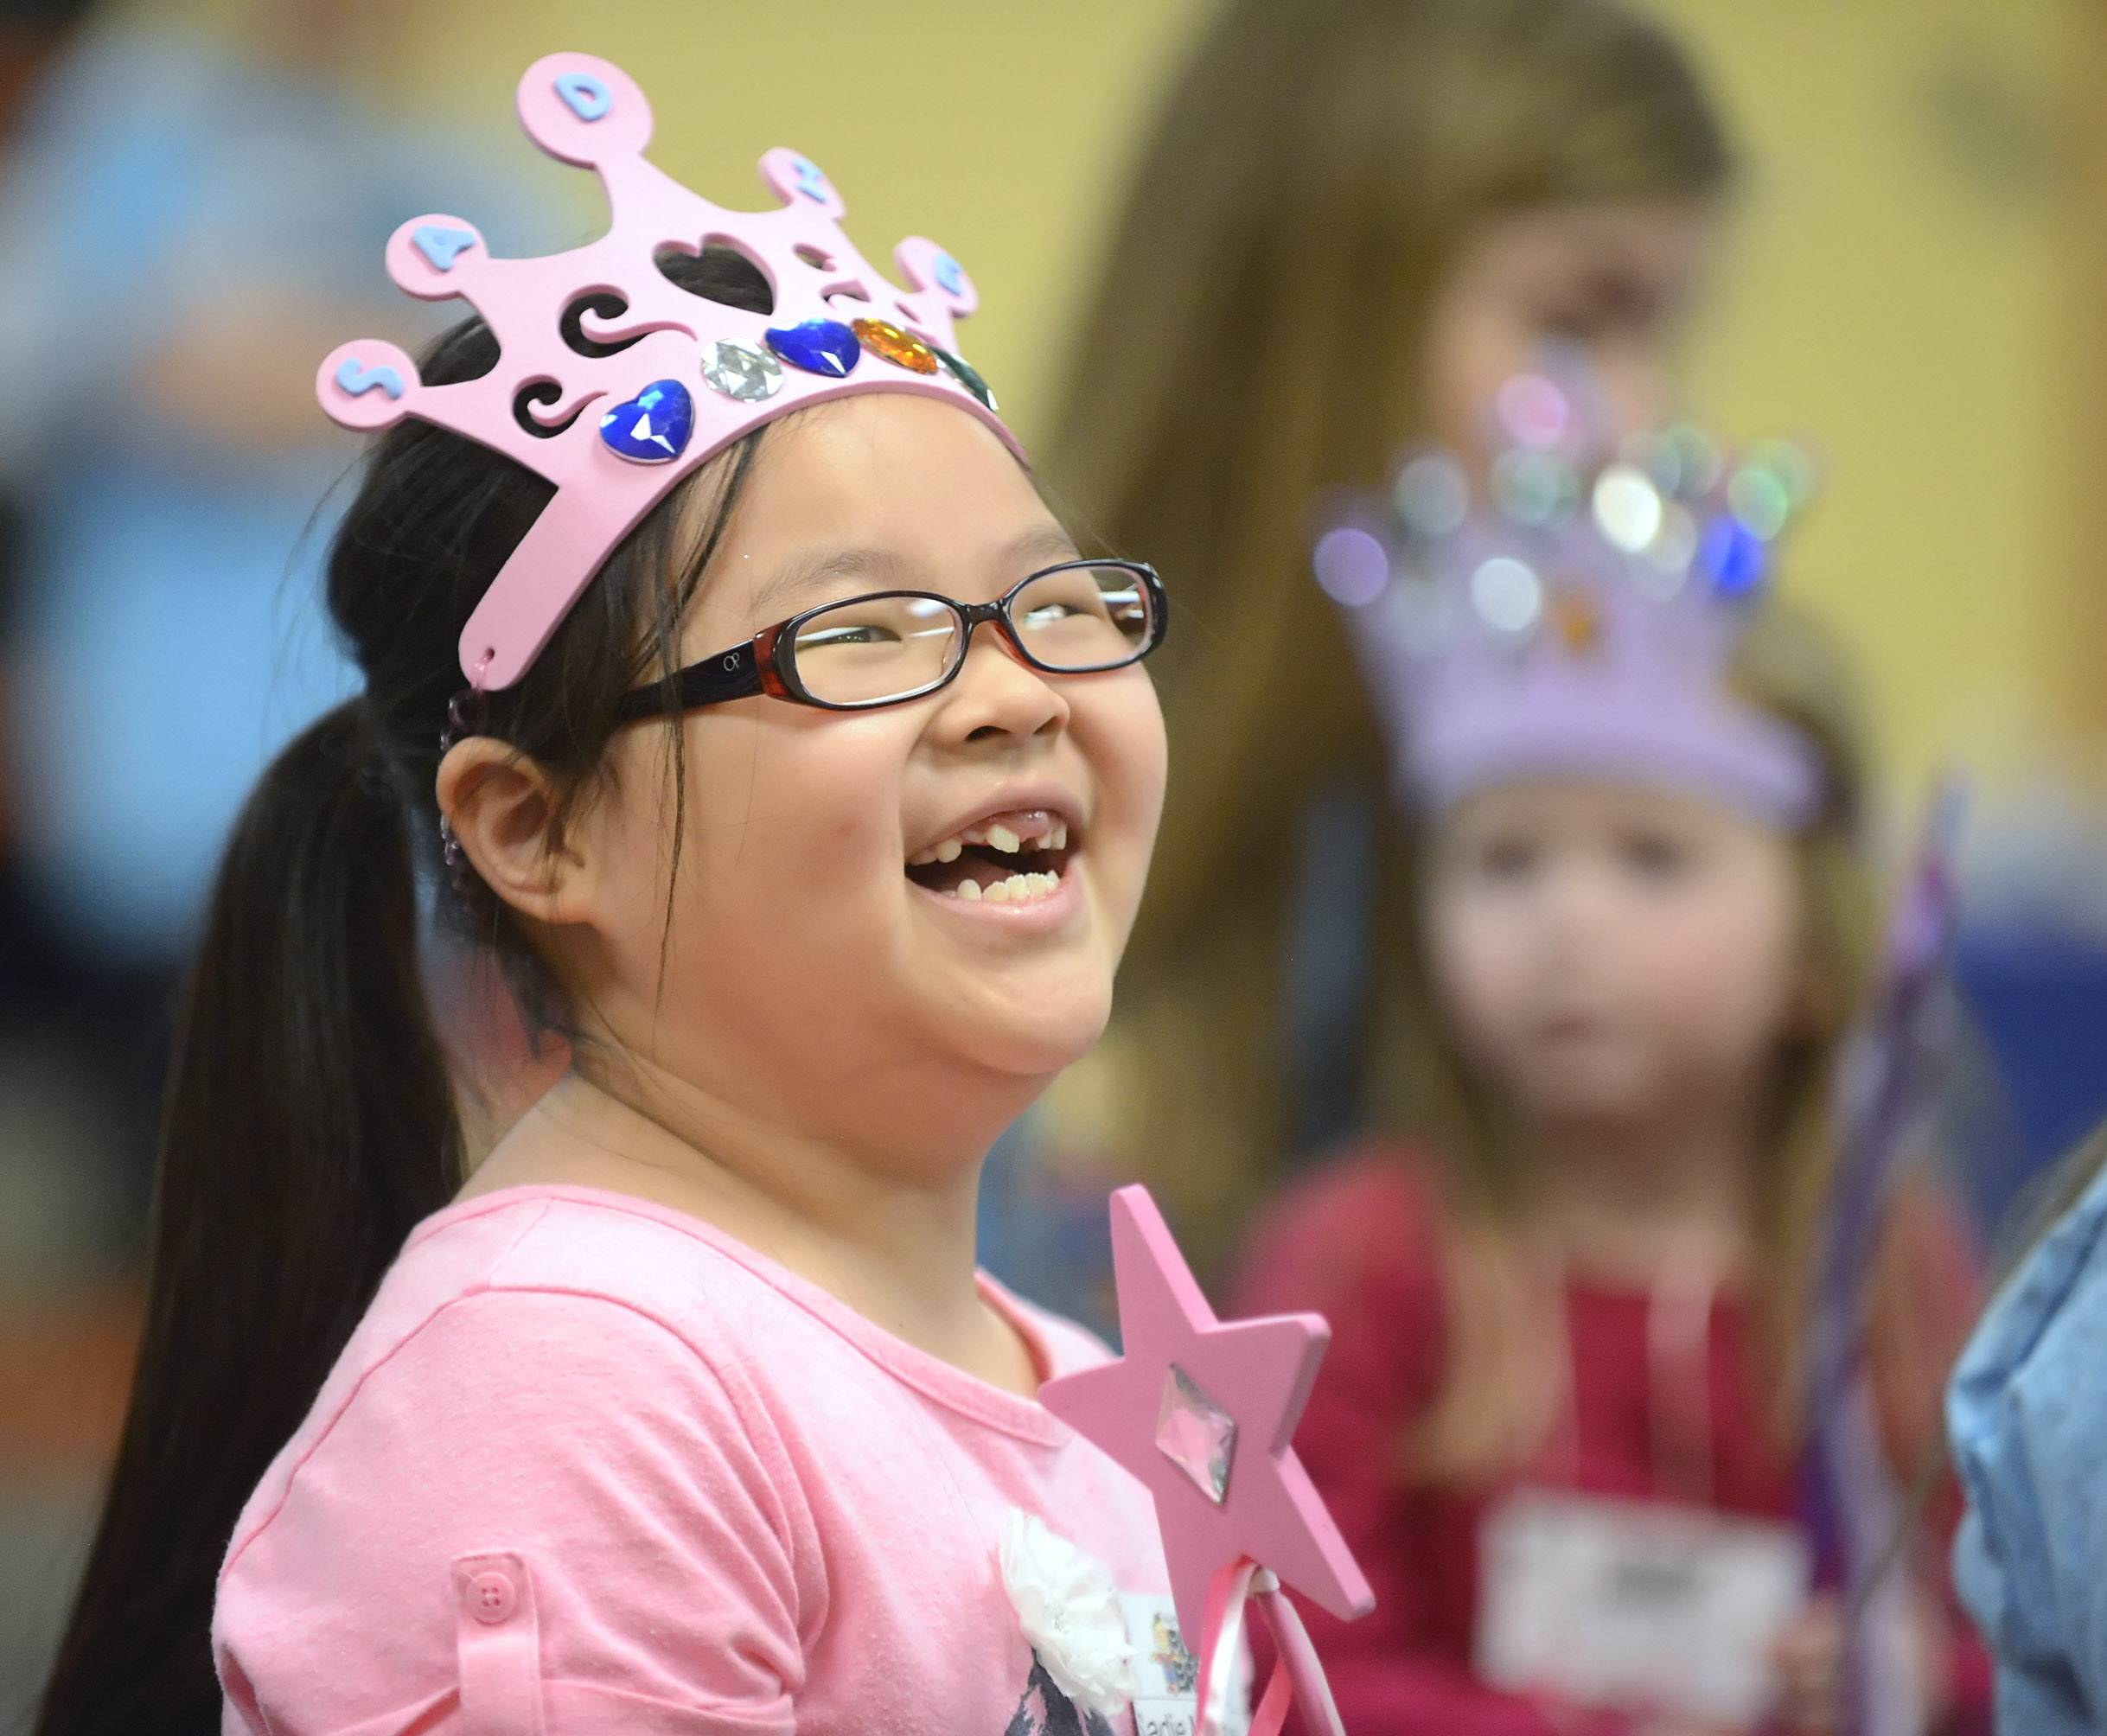 Sadie Marquardt, 7, of Maple Park giggles during a magic show at the second Nathaniel's Hope Buddy Break session at First Baptist Church in Geneva. The free event offered kids with special needs and their siblings an afternoon with a magic show, video games, a cars and trains room, crafts and free play time.